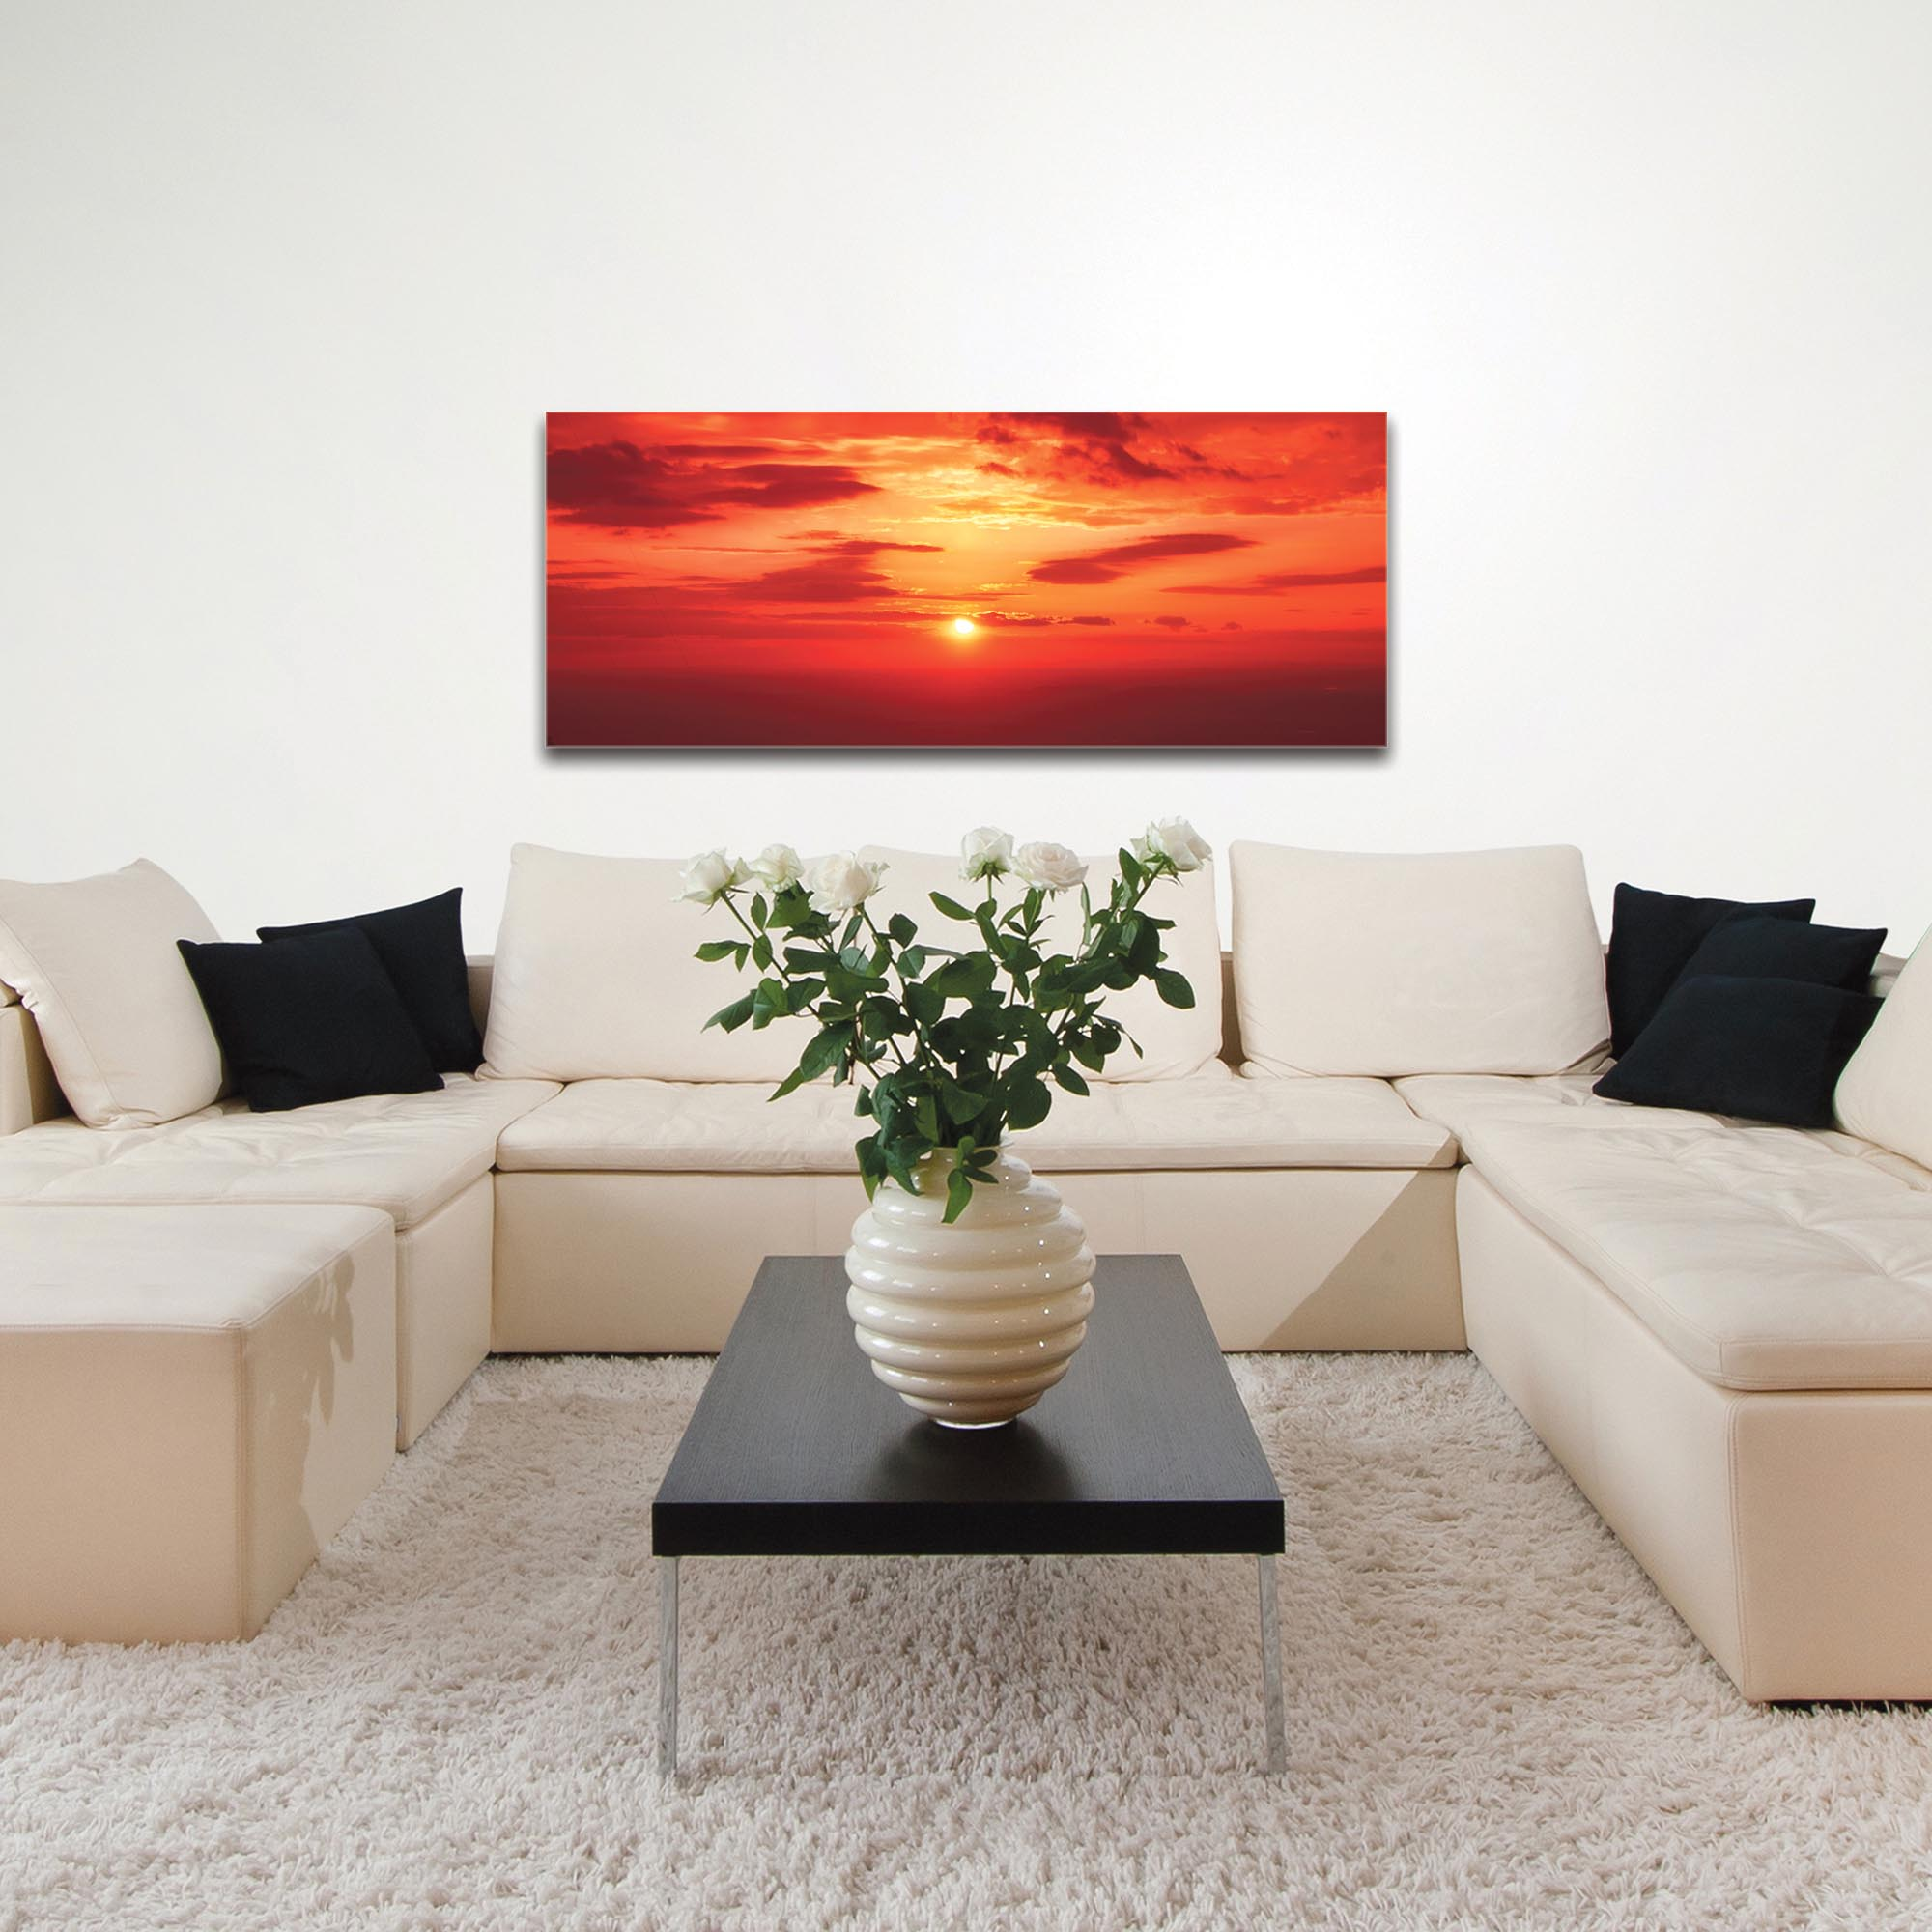 Landscape Photography 'Skies of Flame' - Sunset Art on Metal or Plexiglass - Image 3